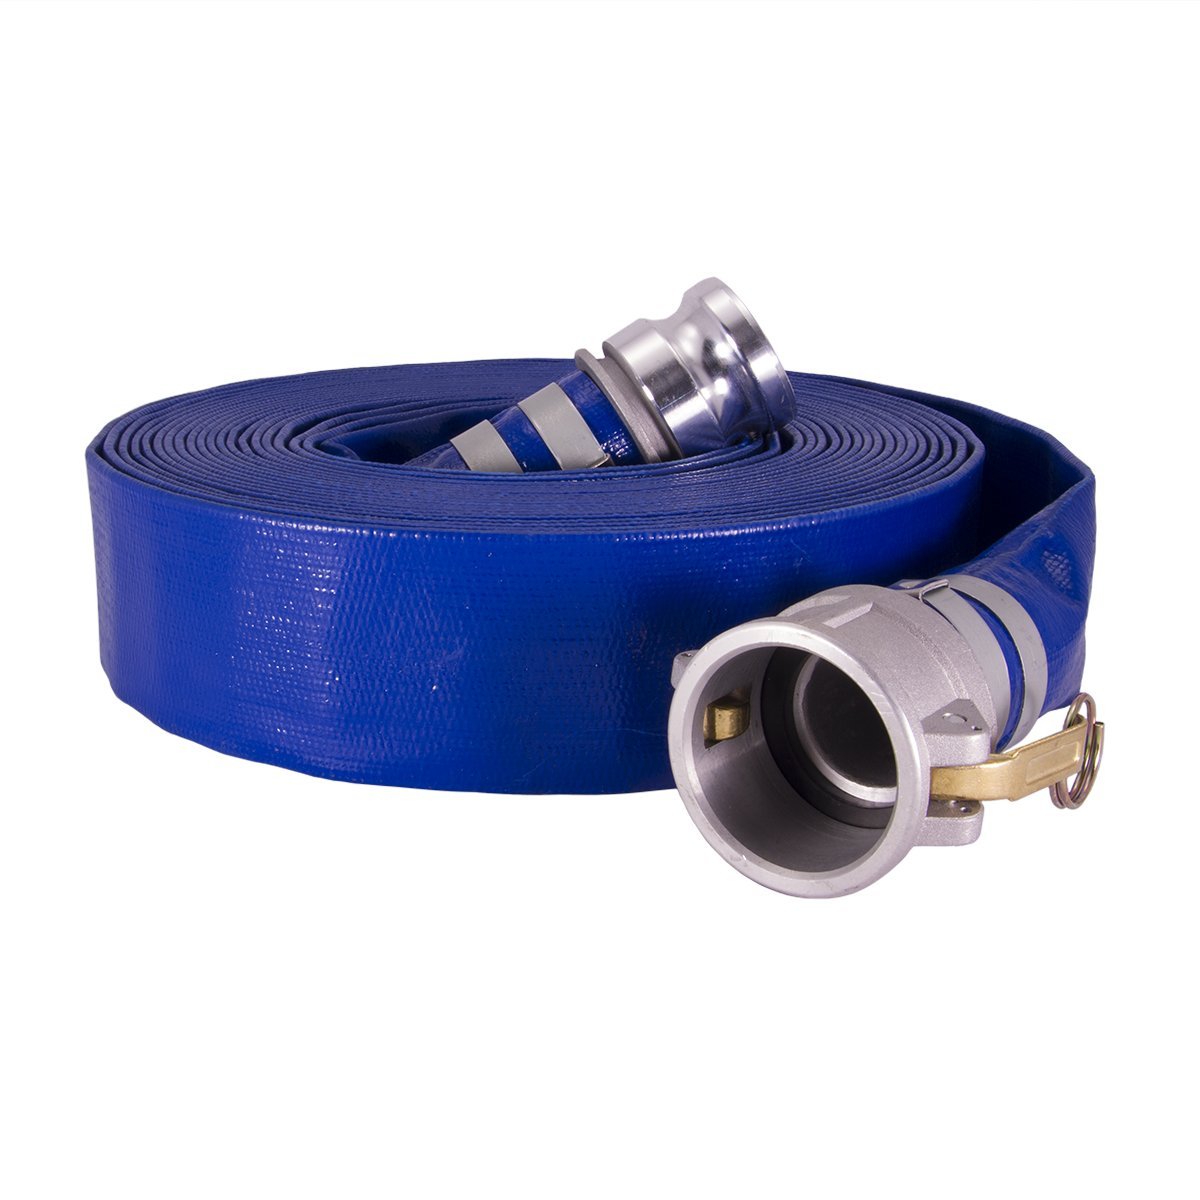 Anderson Process 4'' X 50' Layflat PVC Water Discharge Hose Assembly w/Cam Lock Fittings by Anderson Process